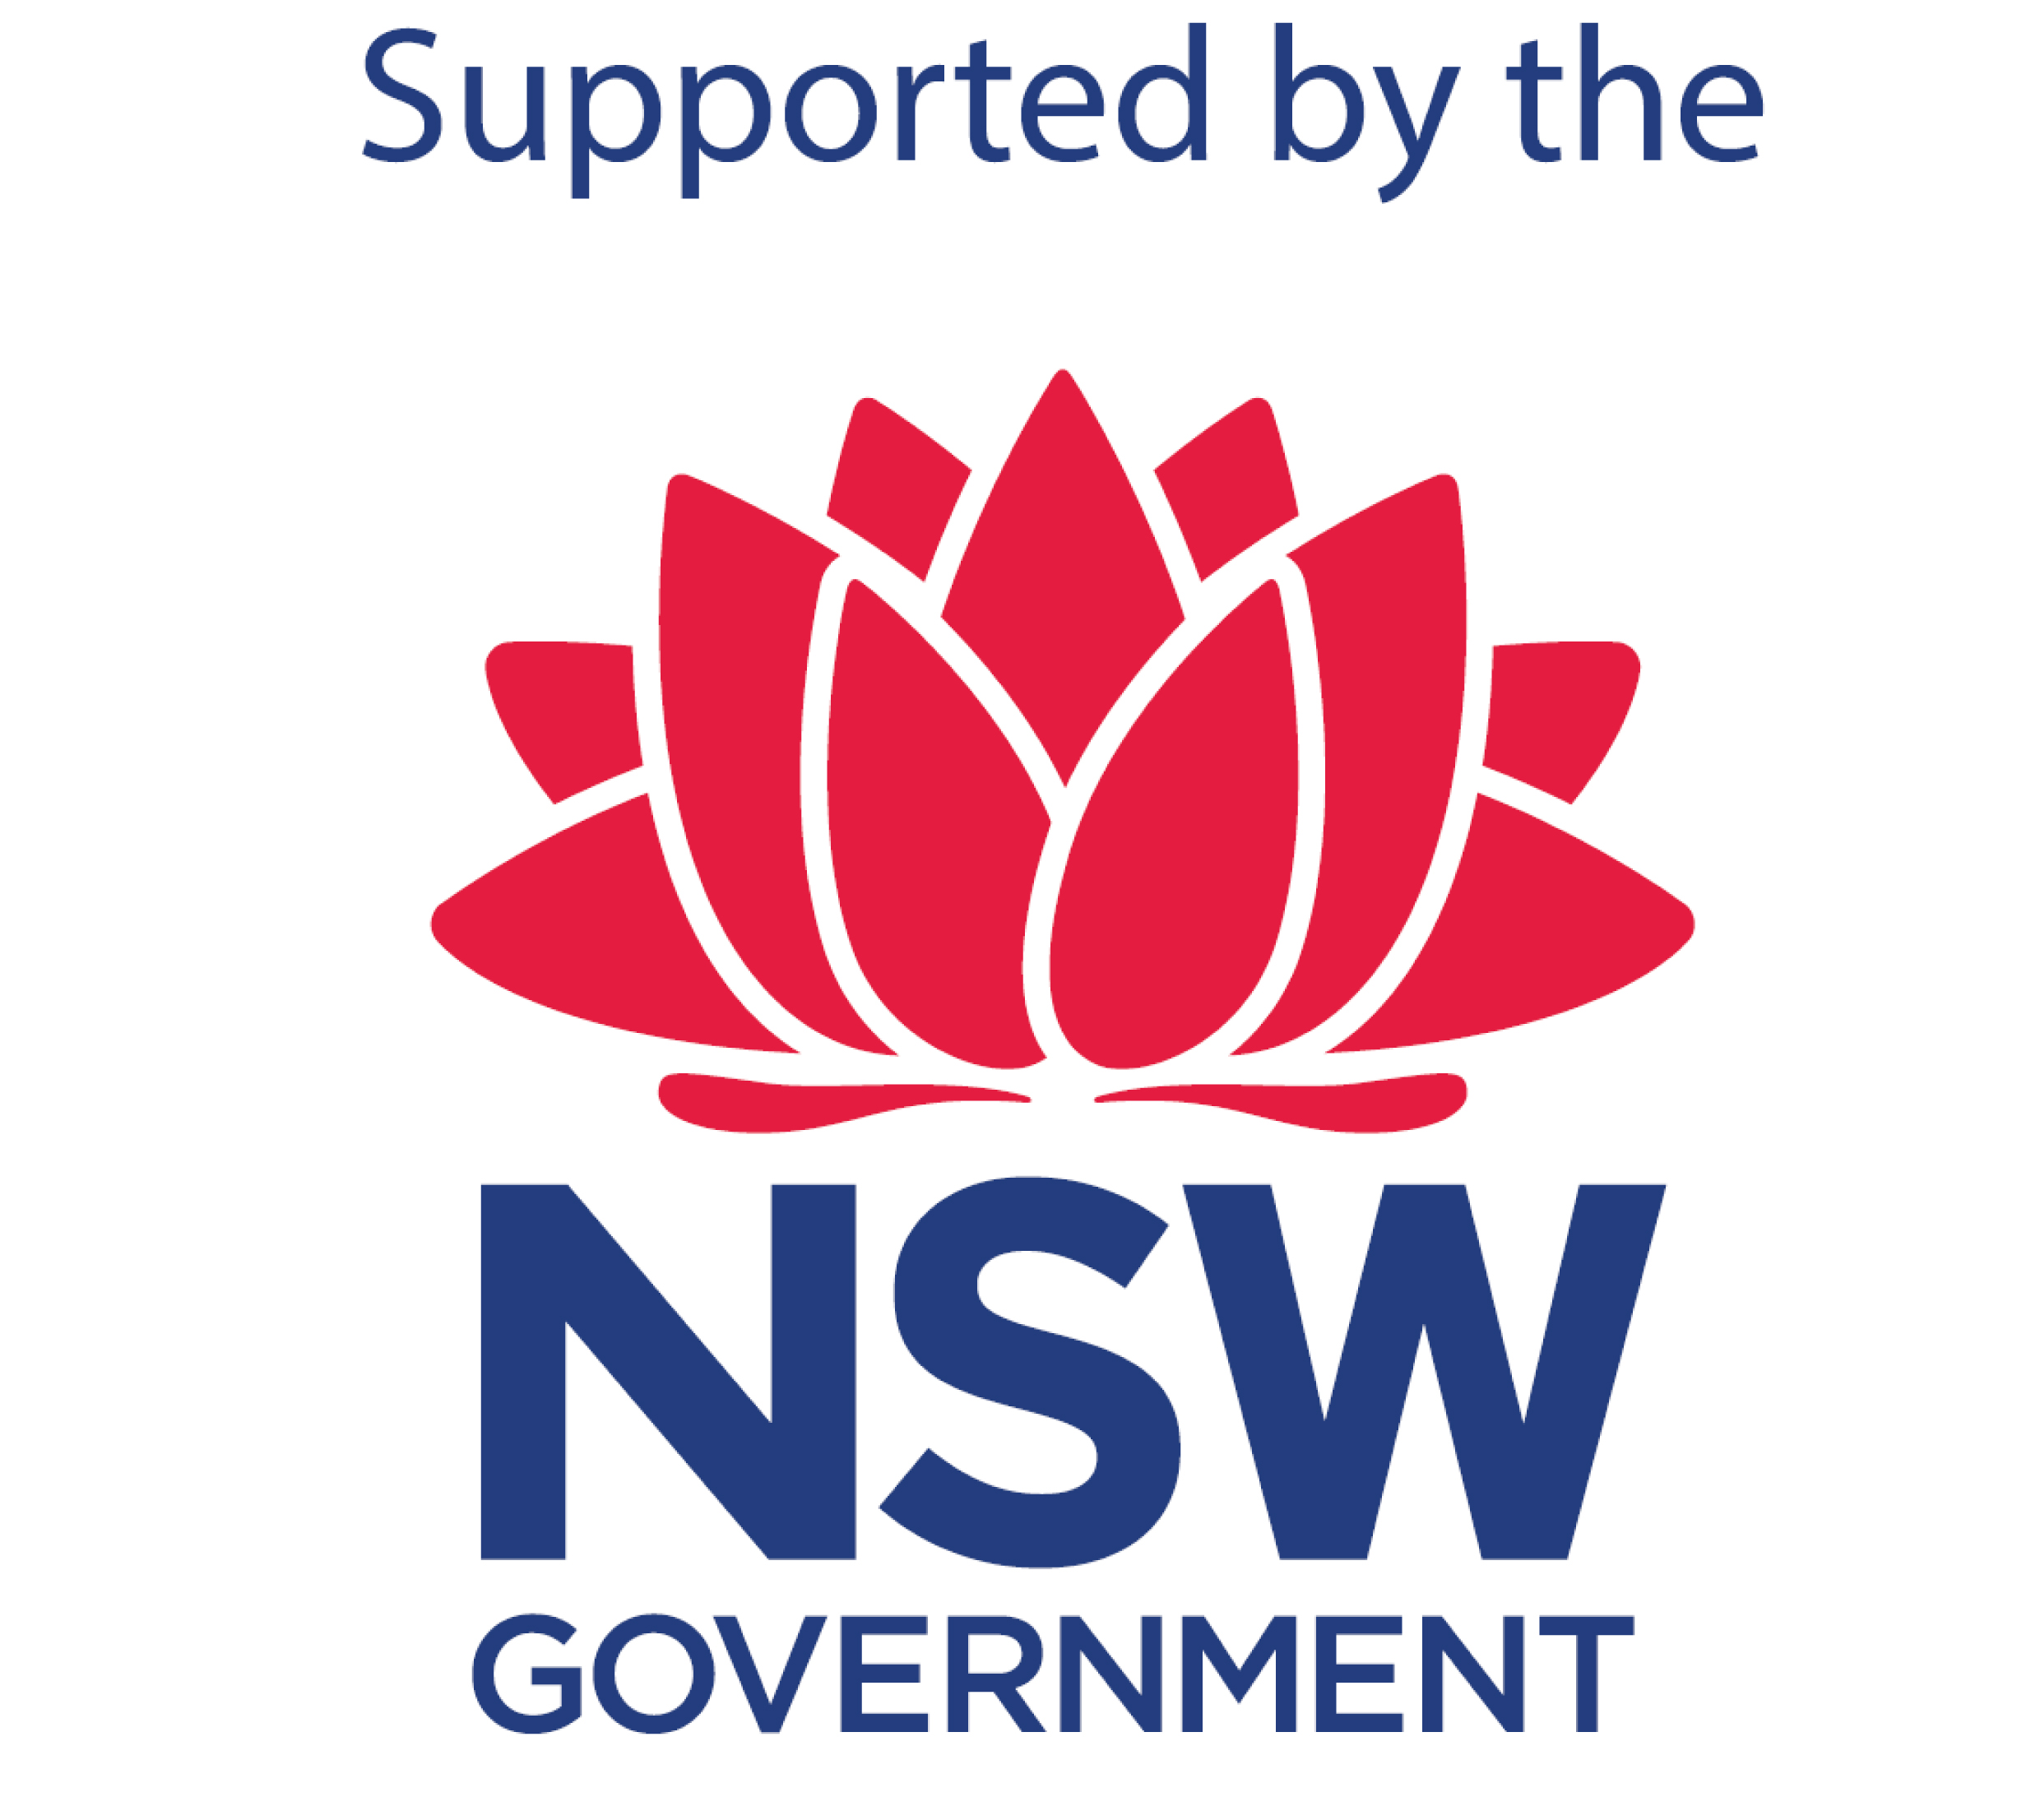 Logo - Supported by the NSW Government _JPEG File